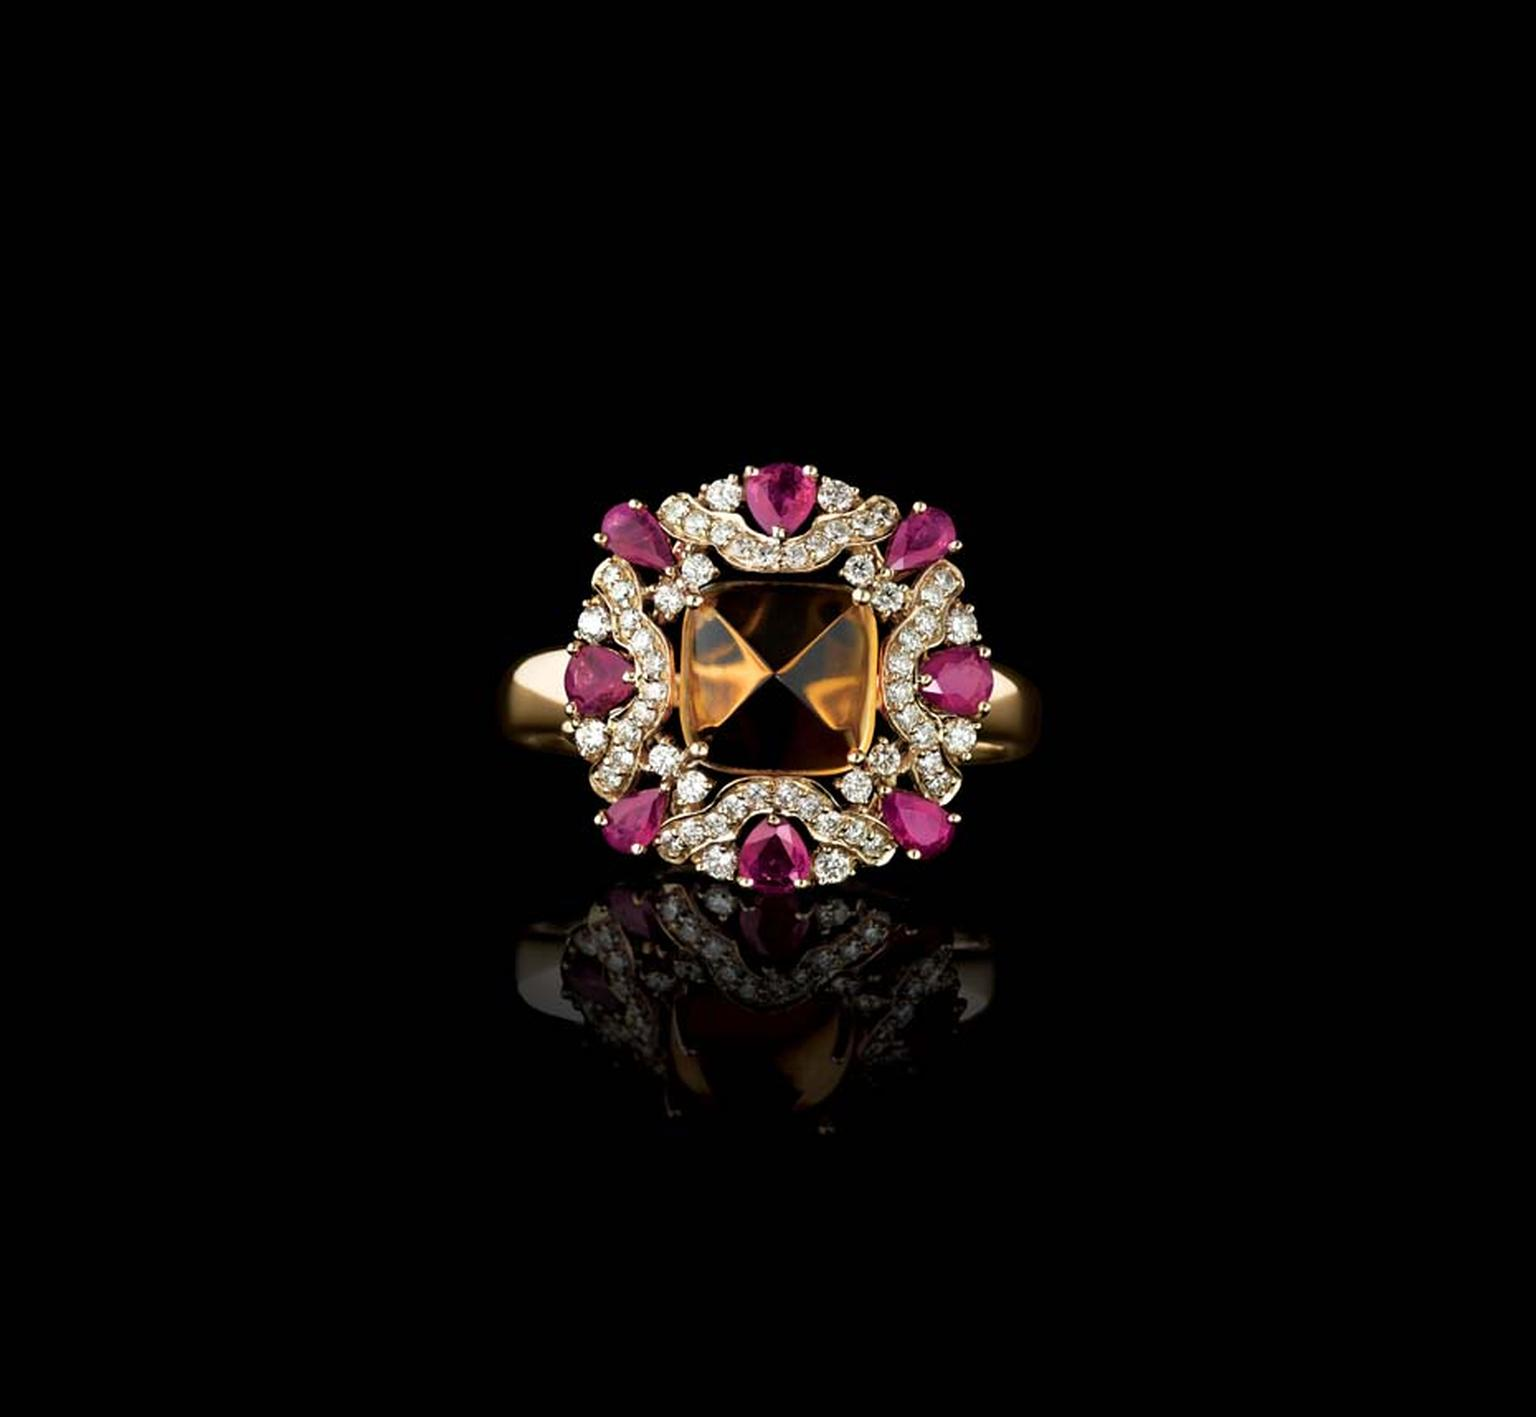 Farah Khan for Tanishq citrine cocktail ring with rubies and diamonds set in yellow gold.